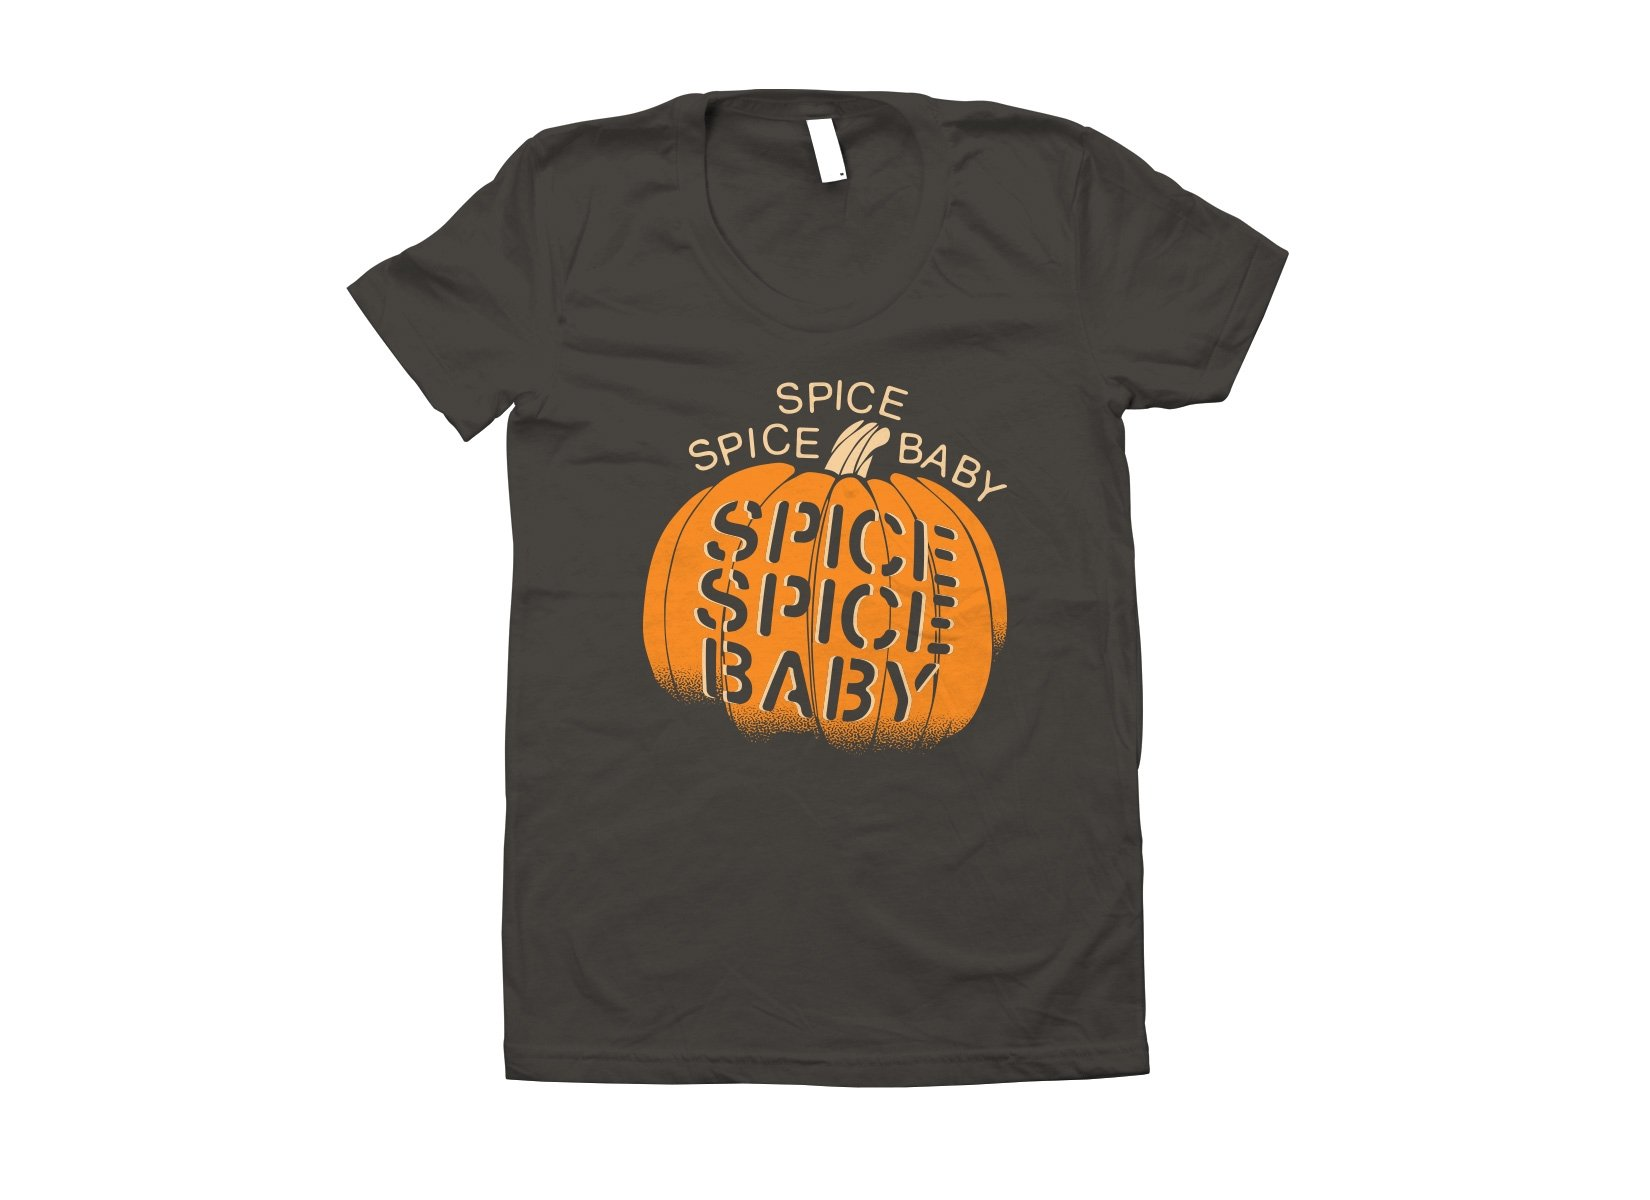 Spice Spice Baby on Juniors T-Shirt